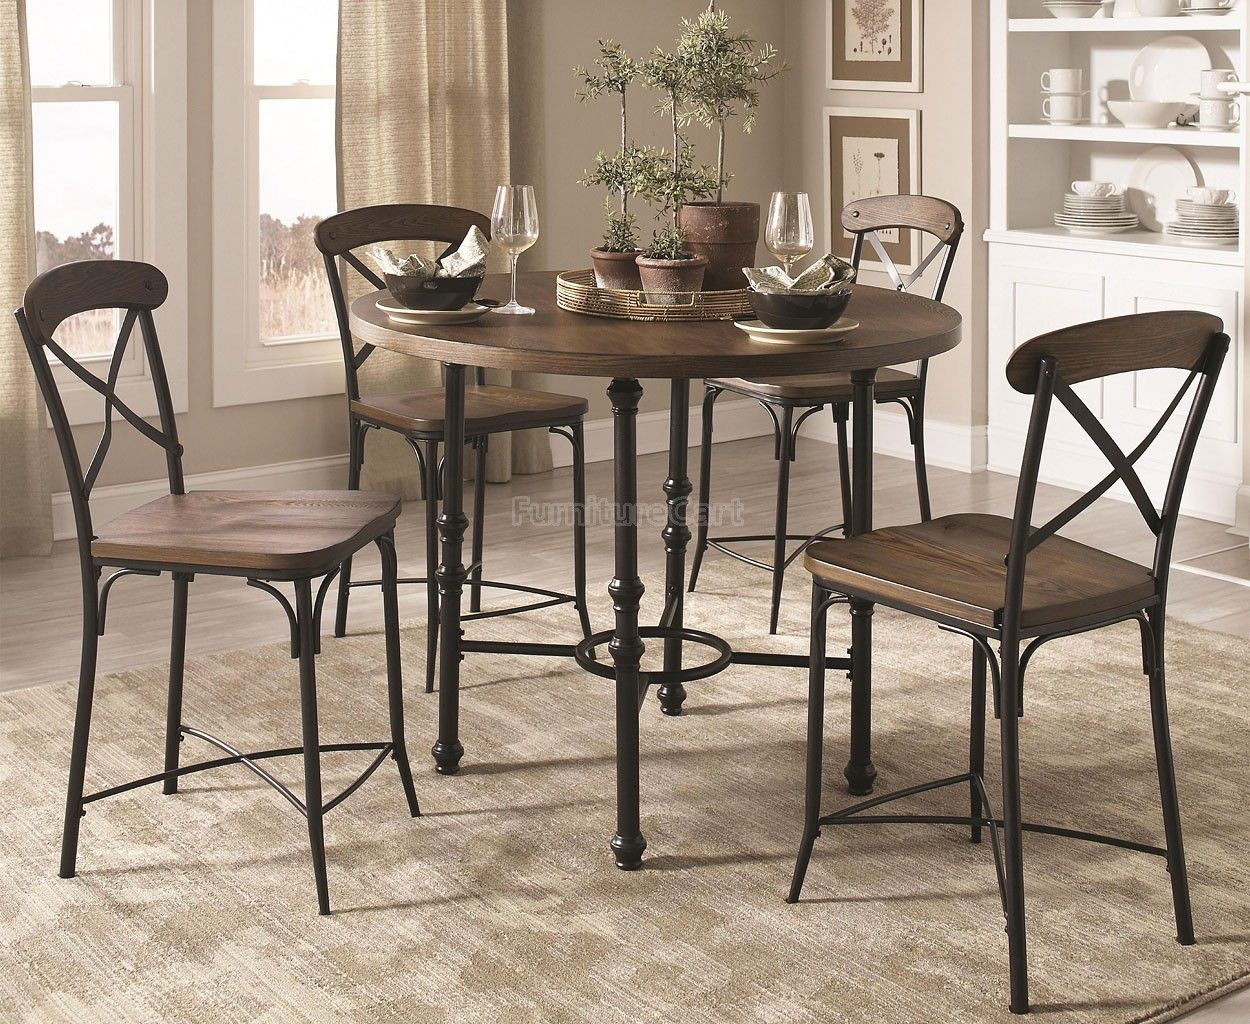 Furniture Monticello Counter Height Dining